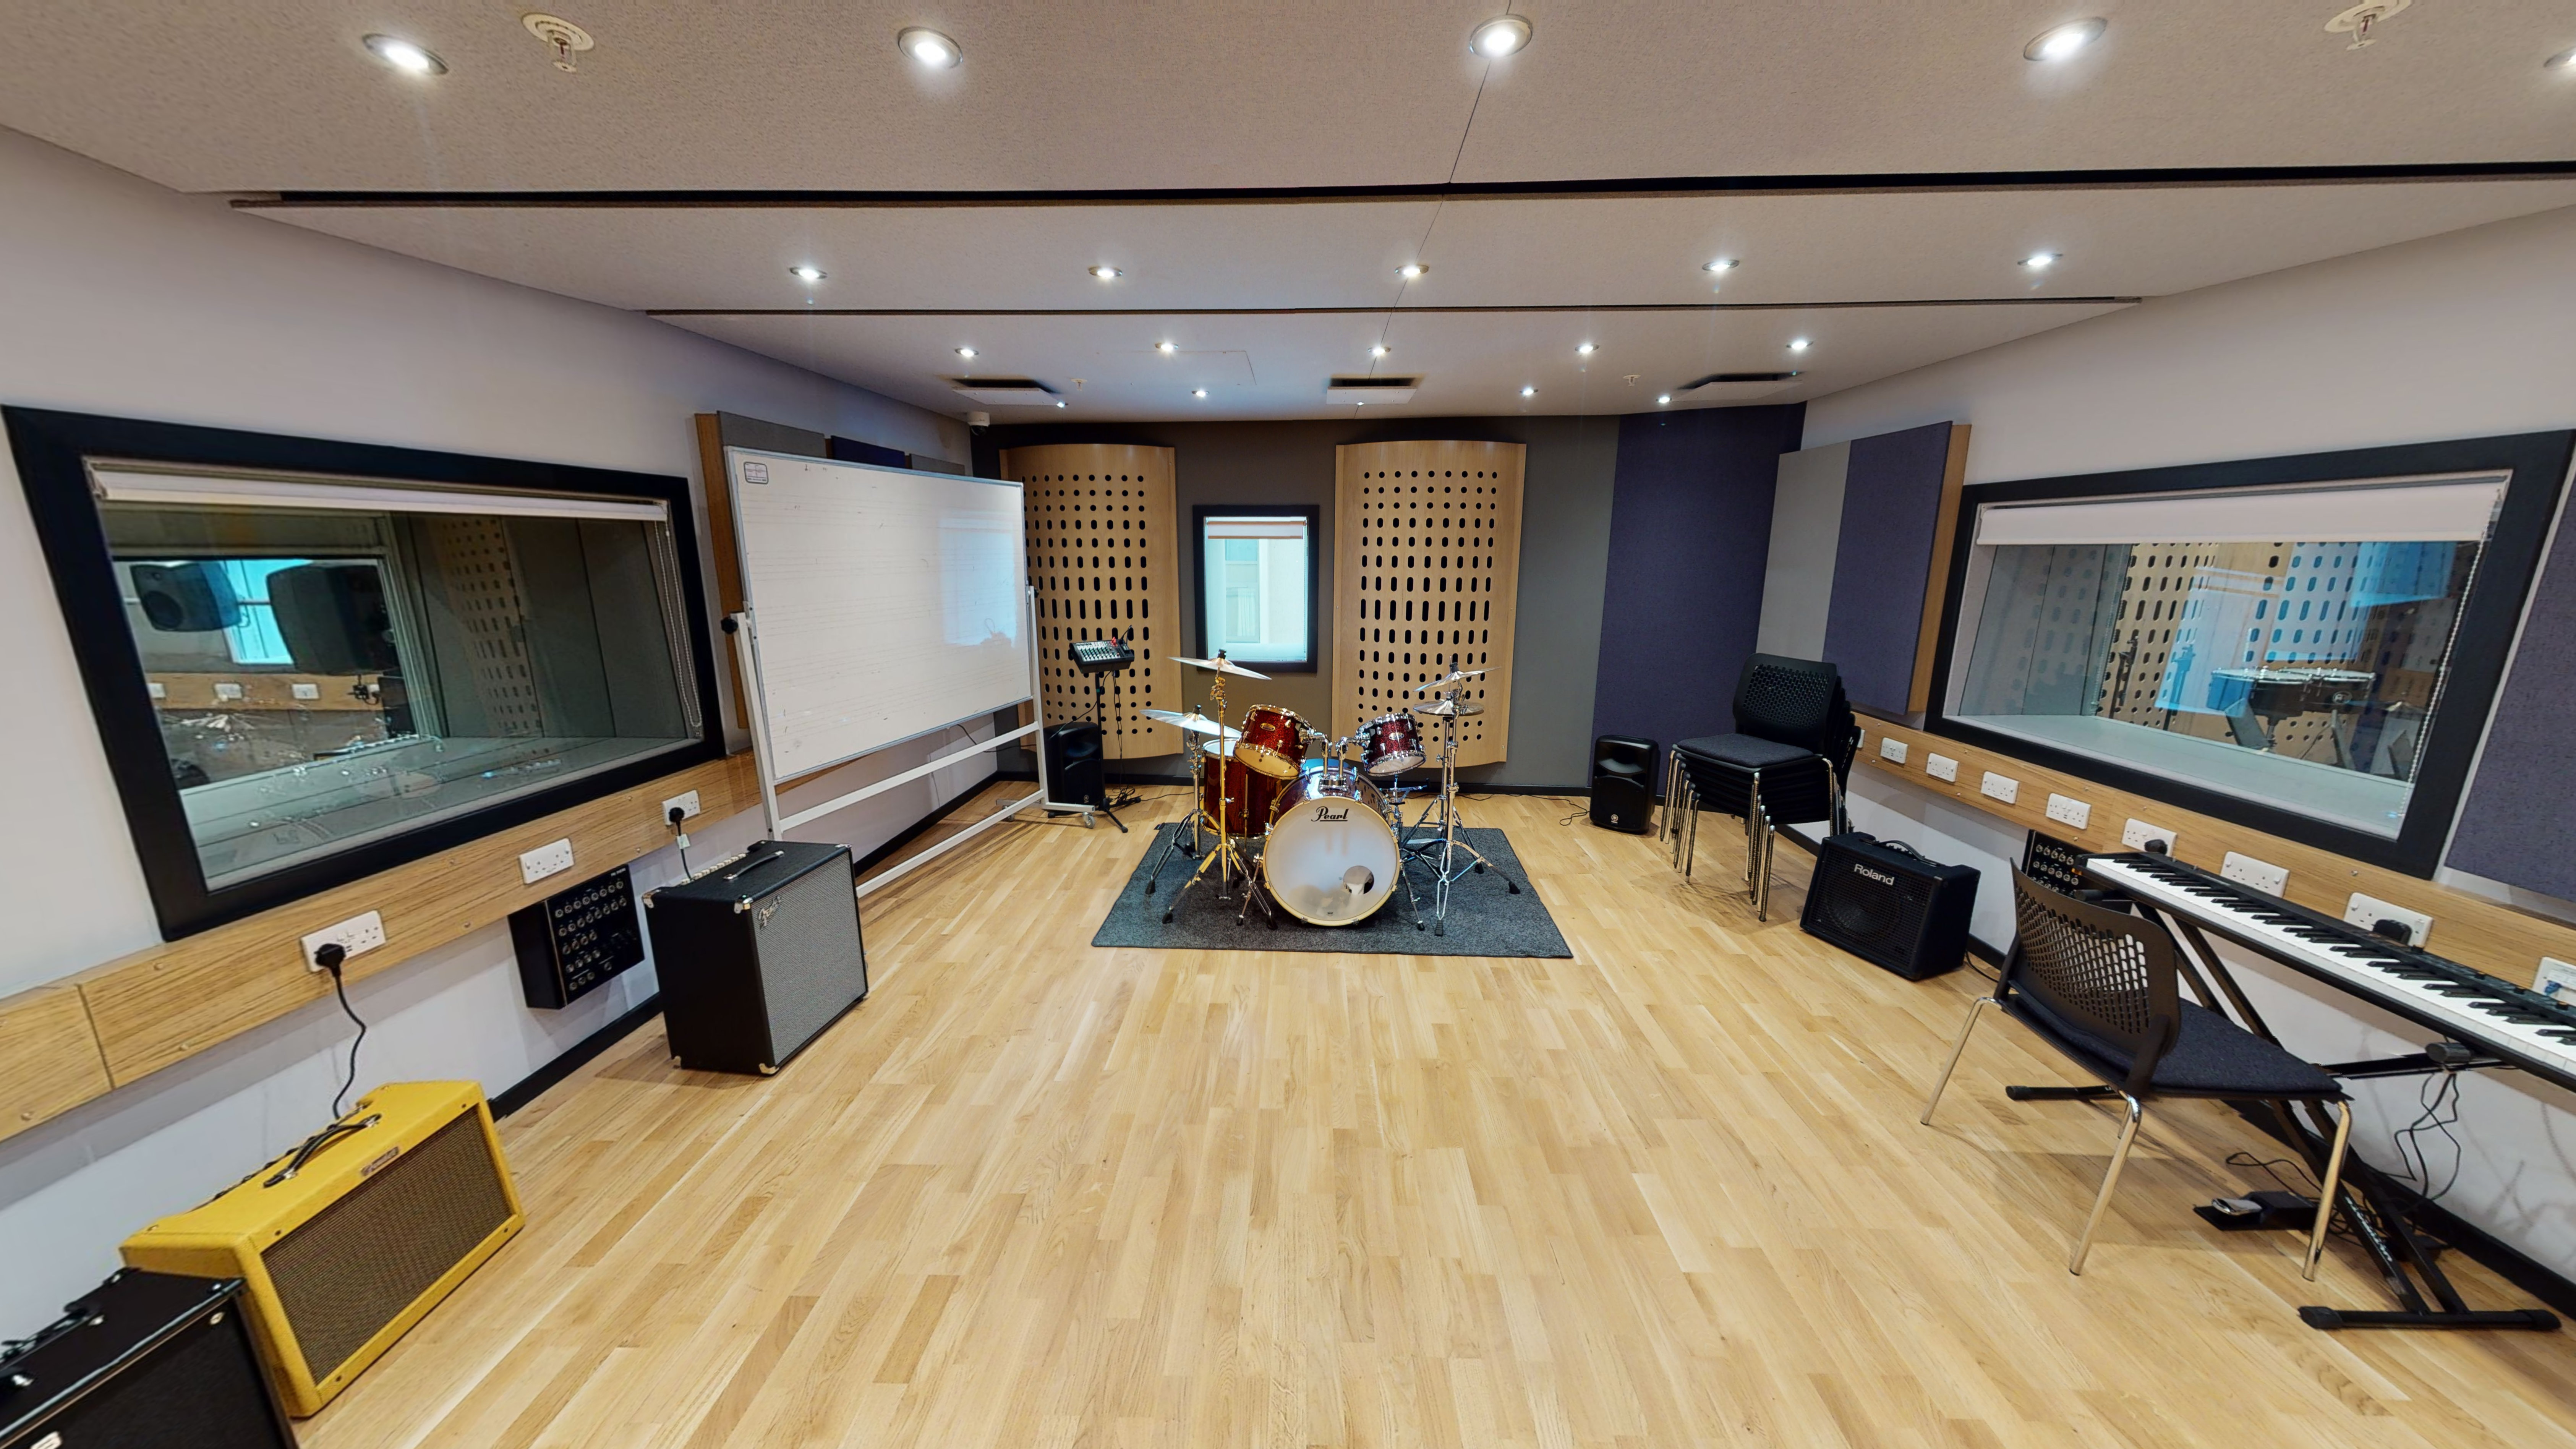 Open music studio space with wooden floor, speakers, amps and control consoles.